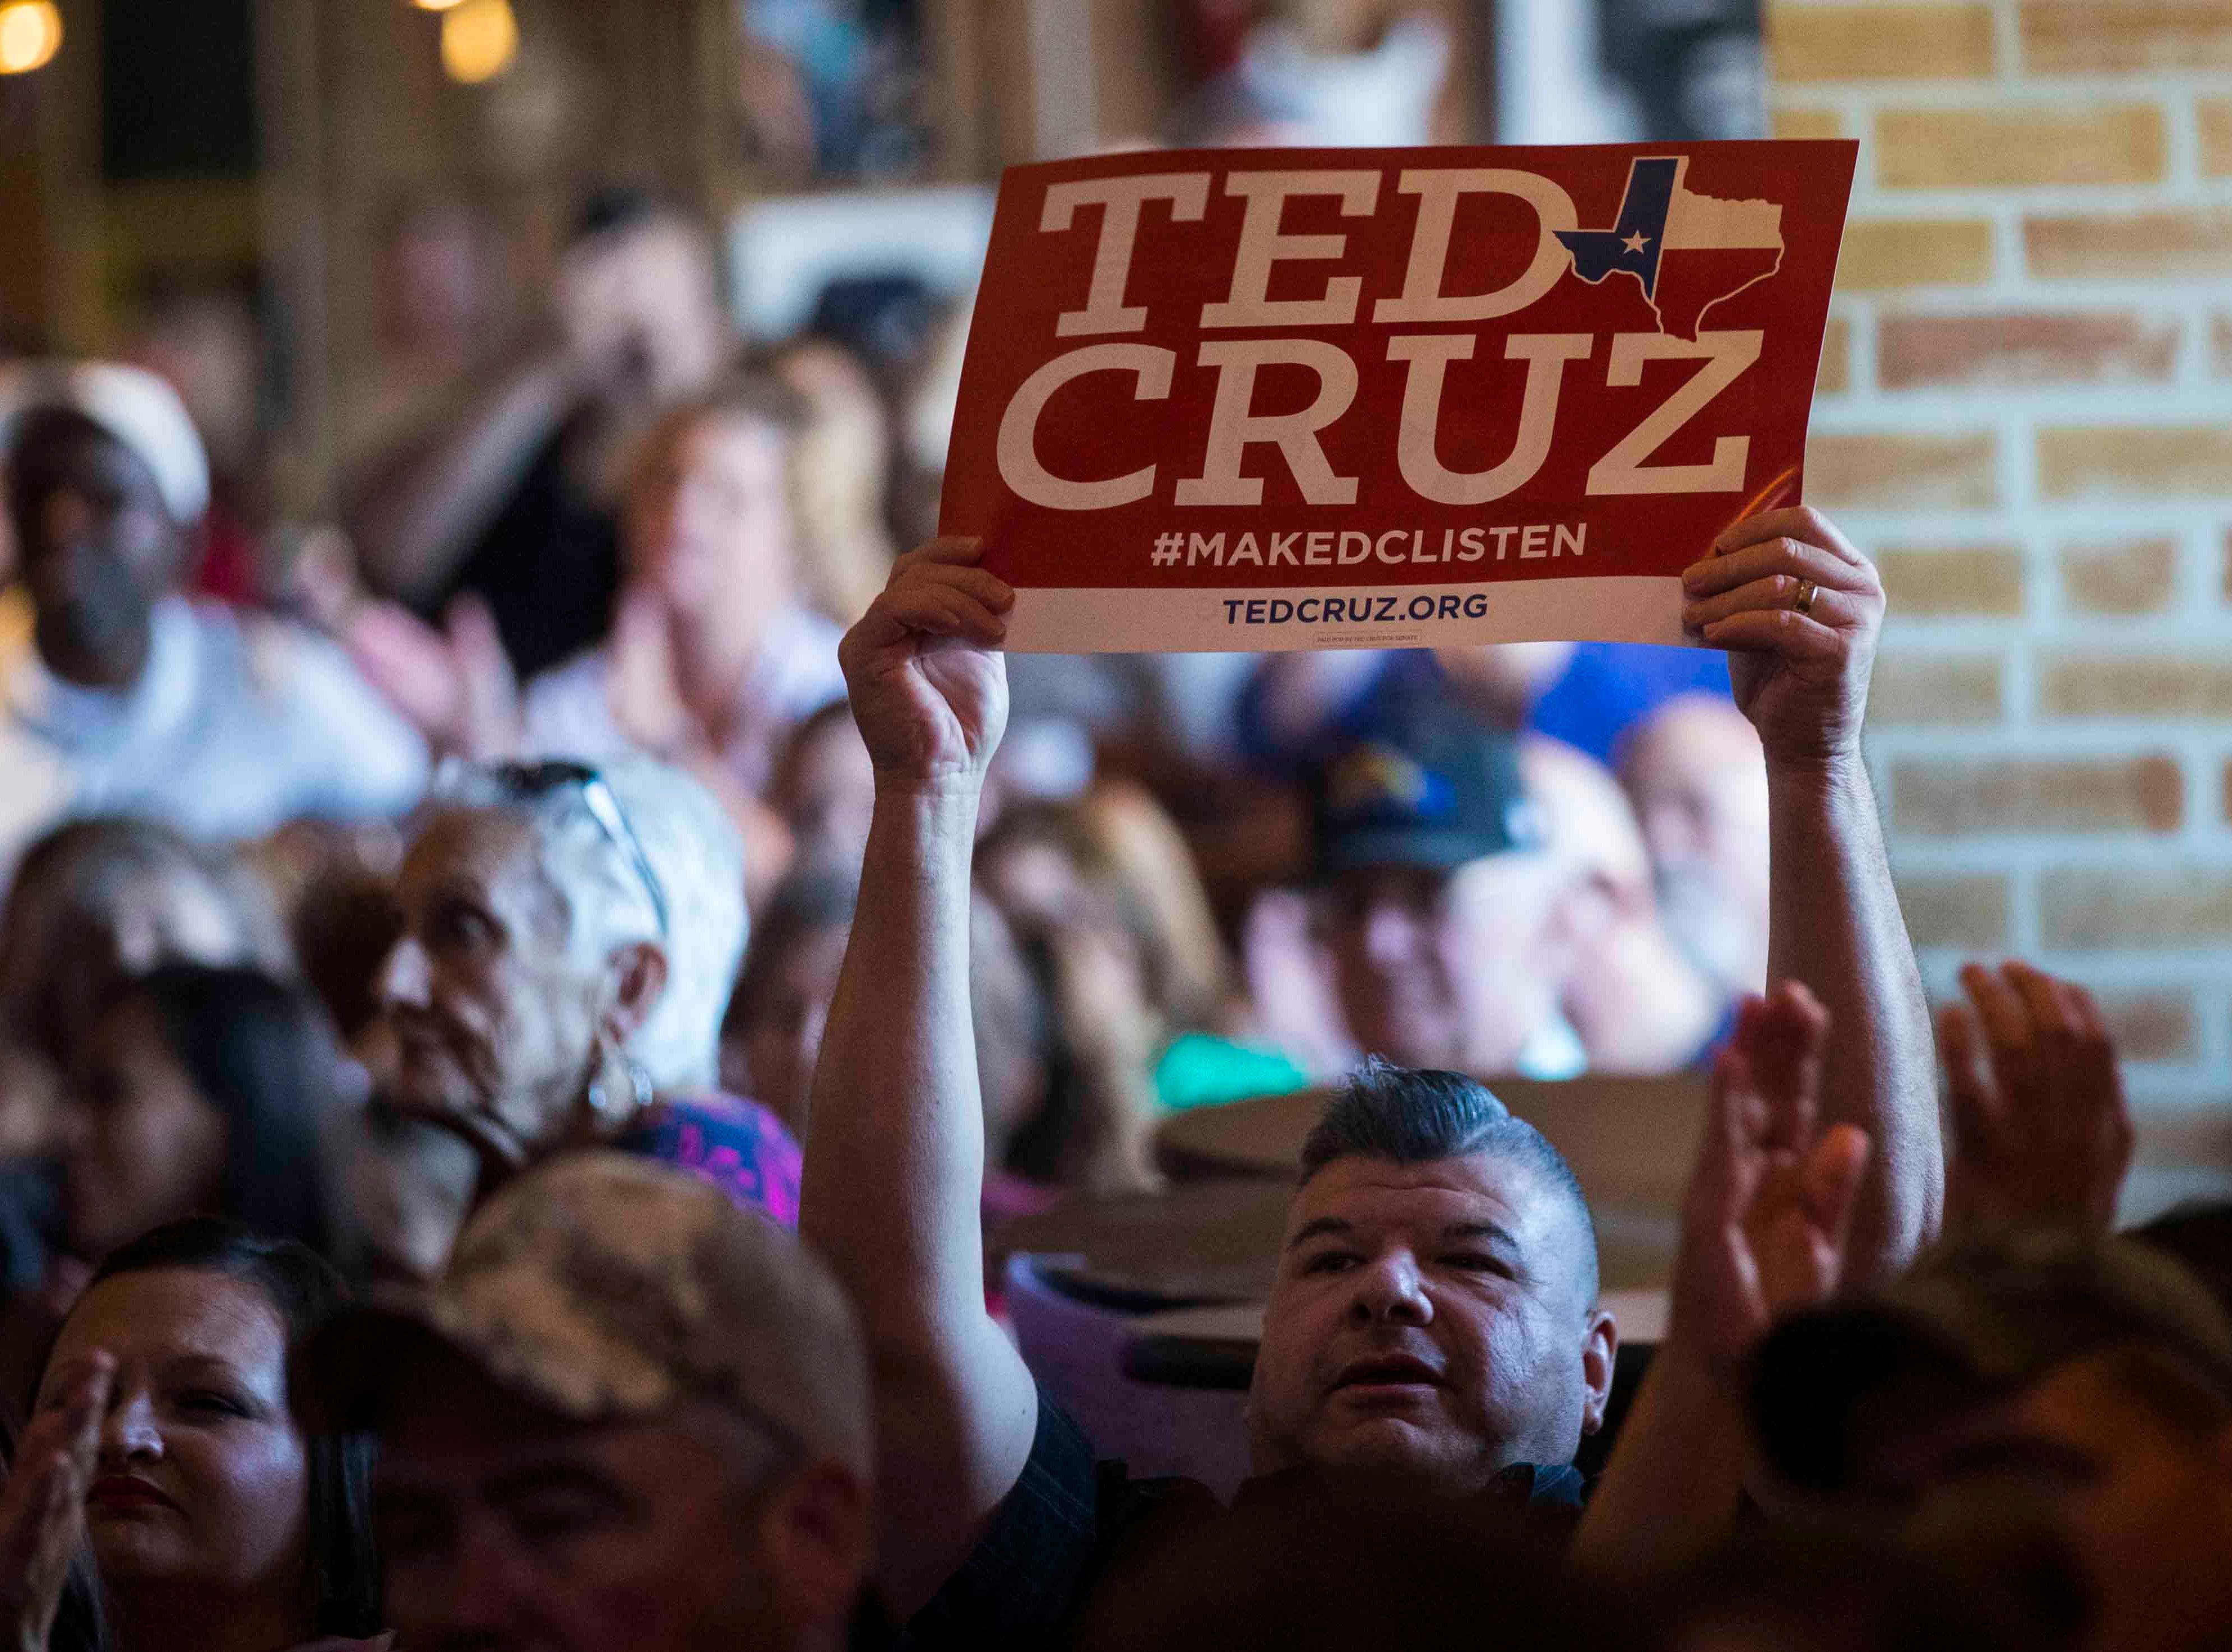 A man holds up a Ted Cruz campaign sign during an event on Saturday, August 16, 2018, at House of Rock in Corpus Christi.